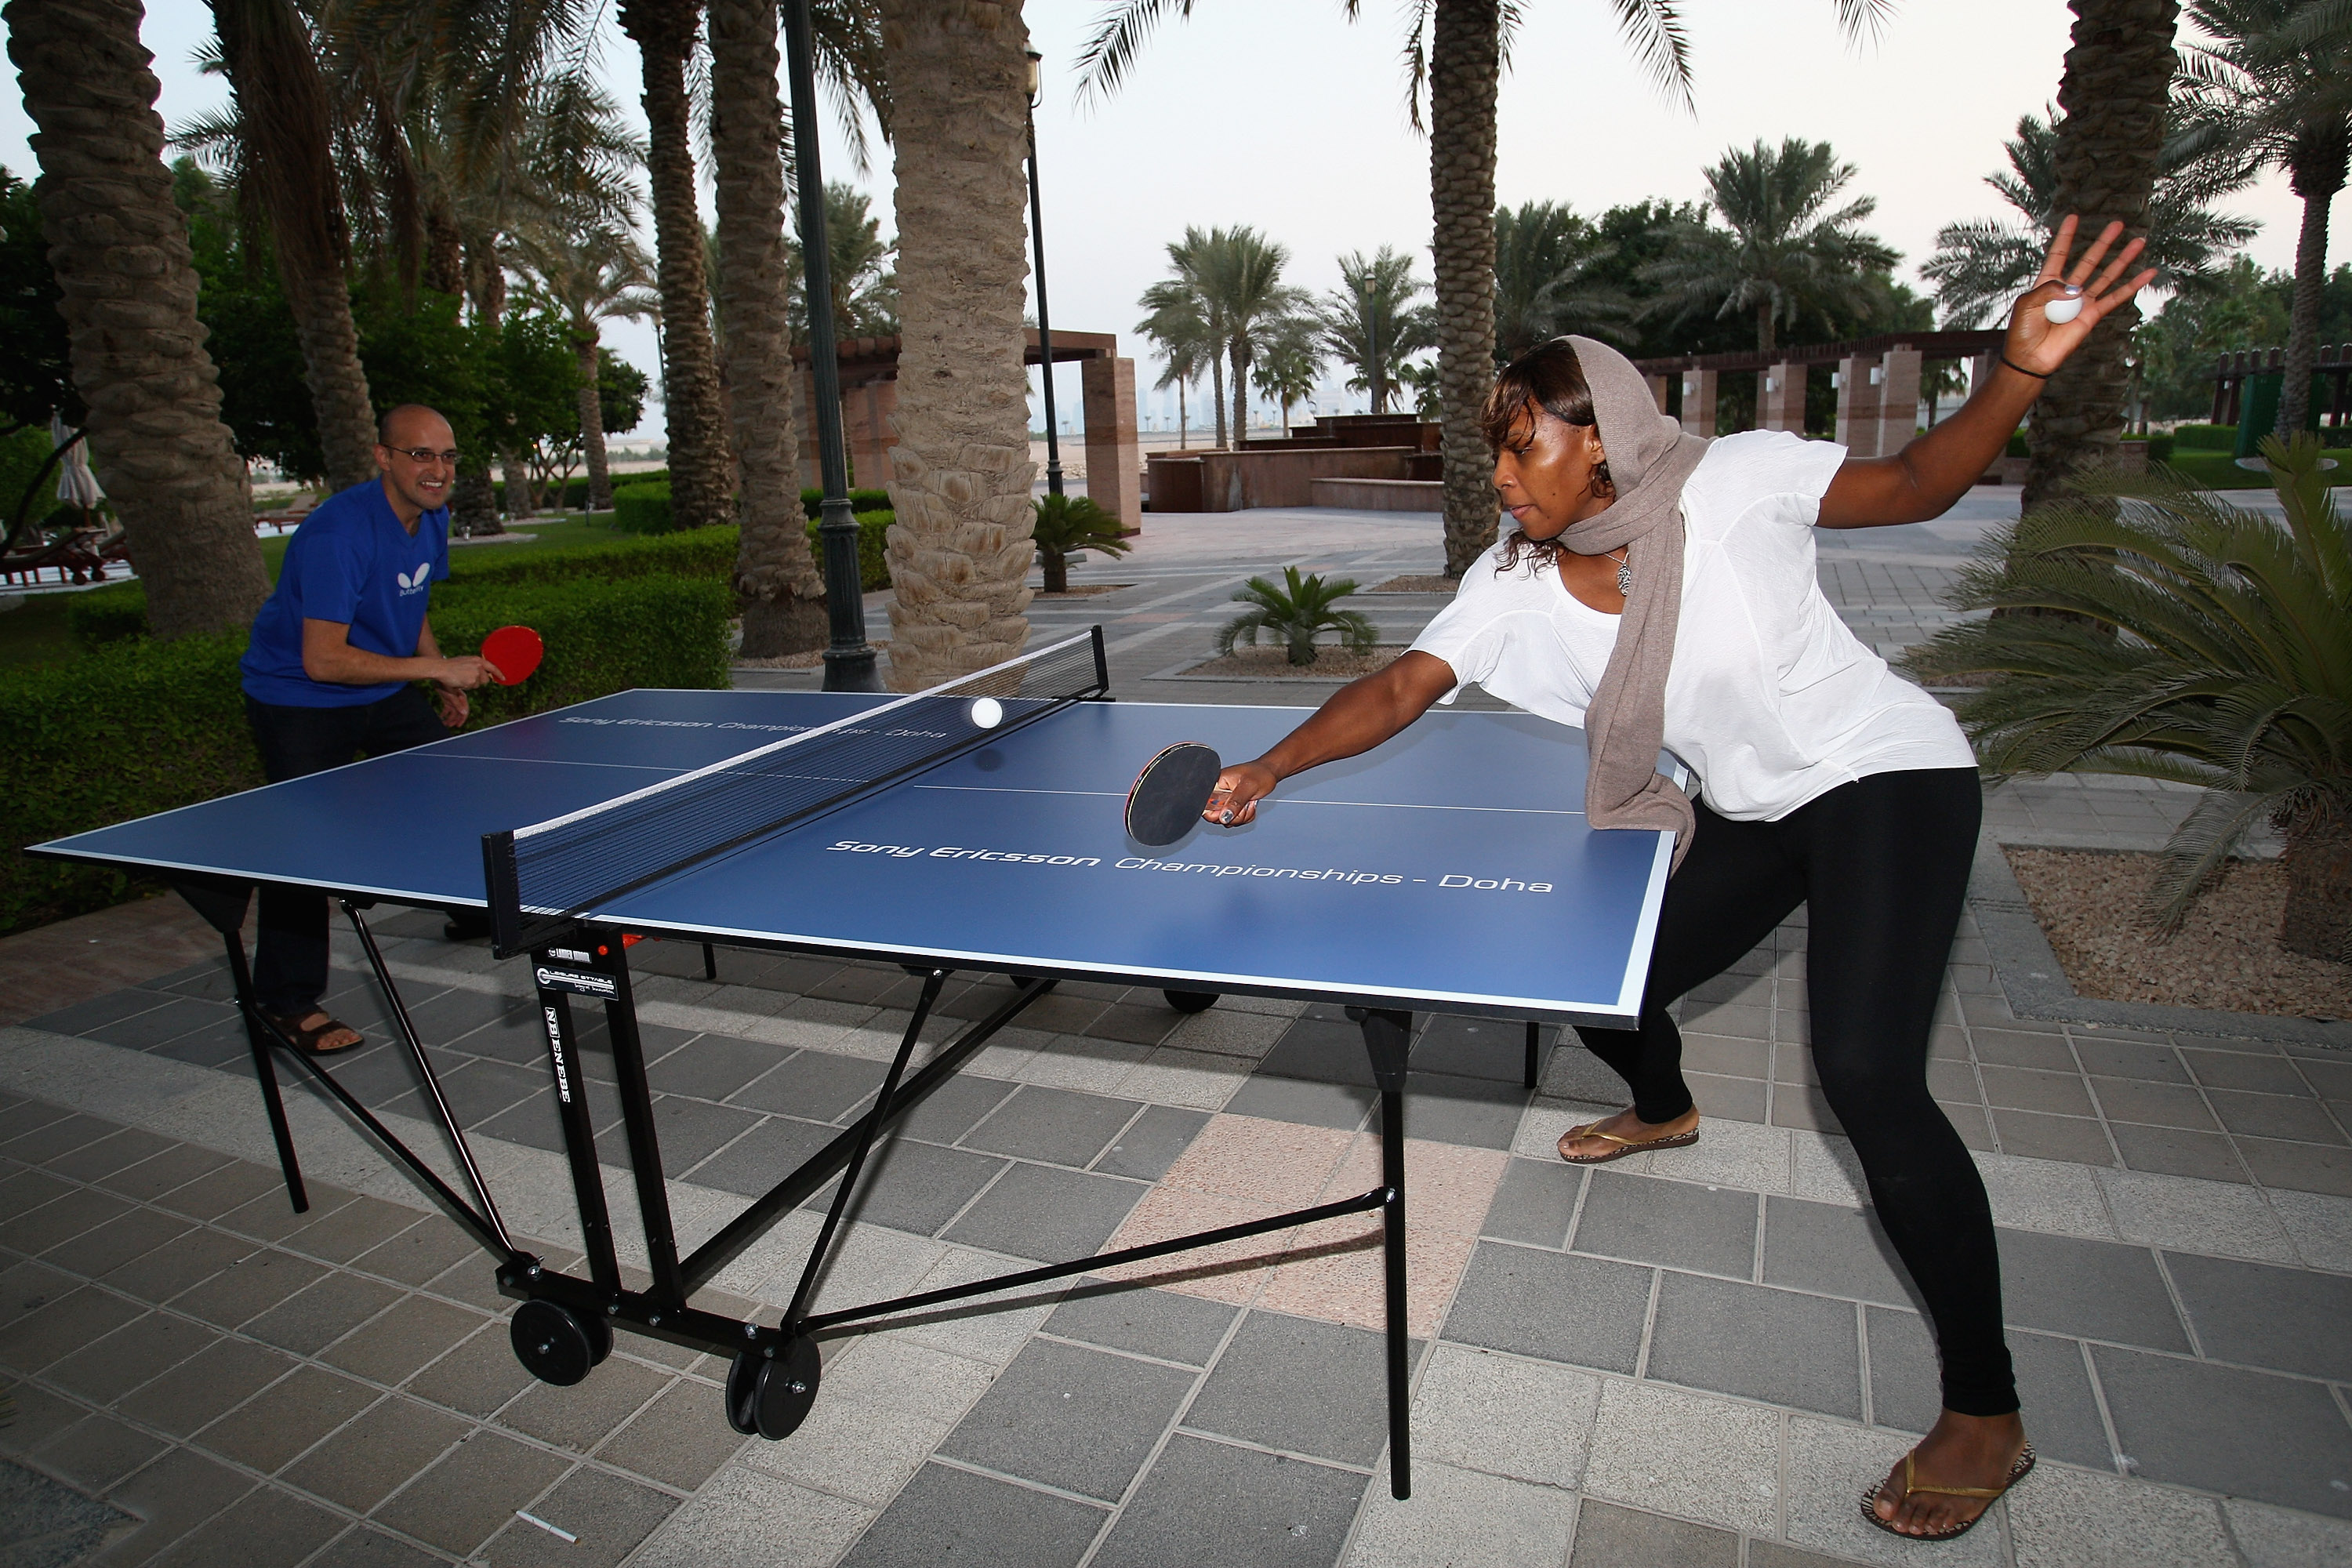 But not in ping pong.